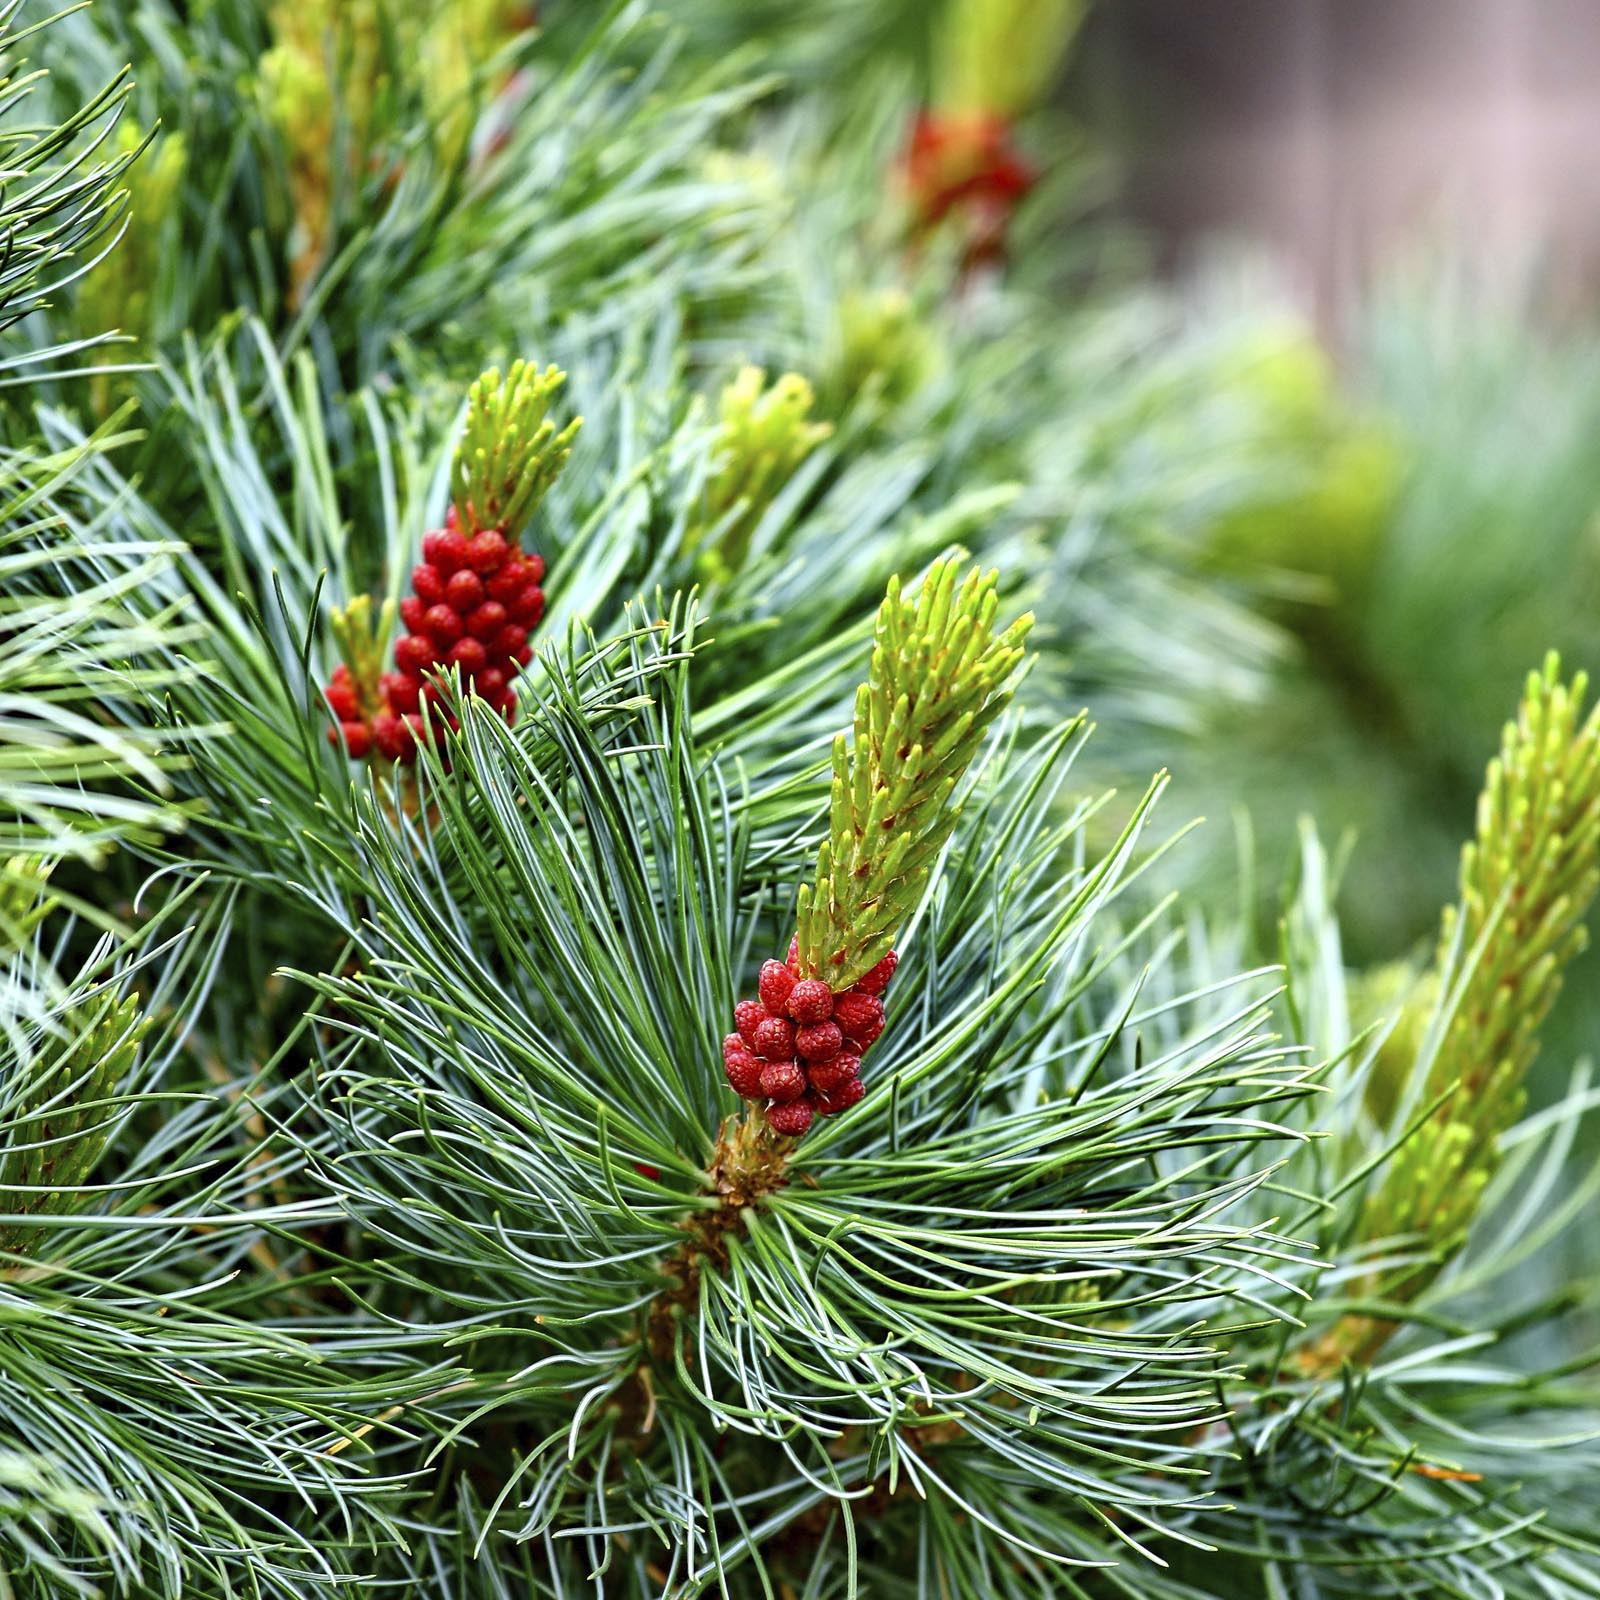 Pine with Cones natural background